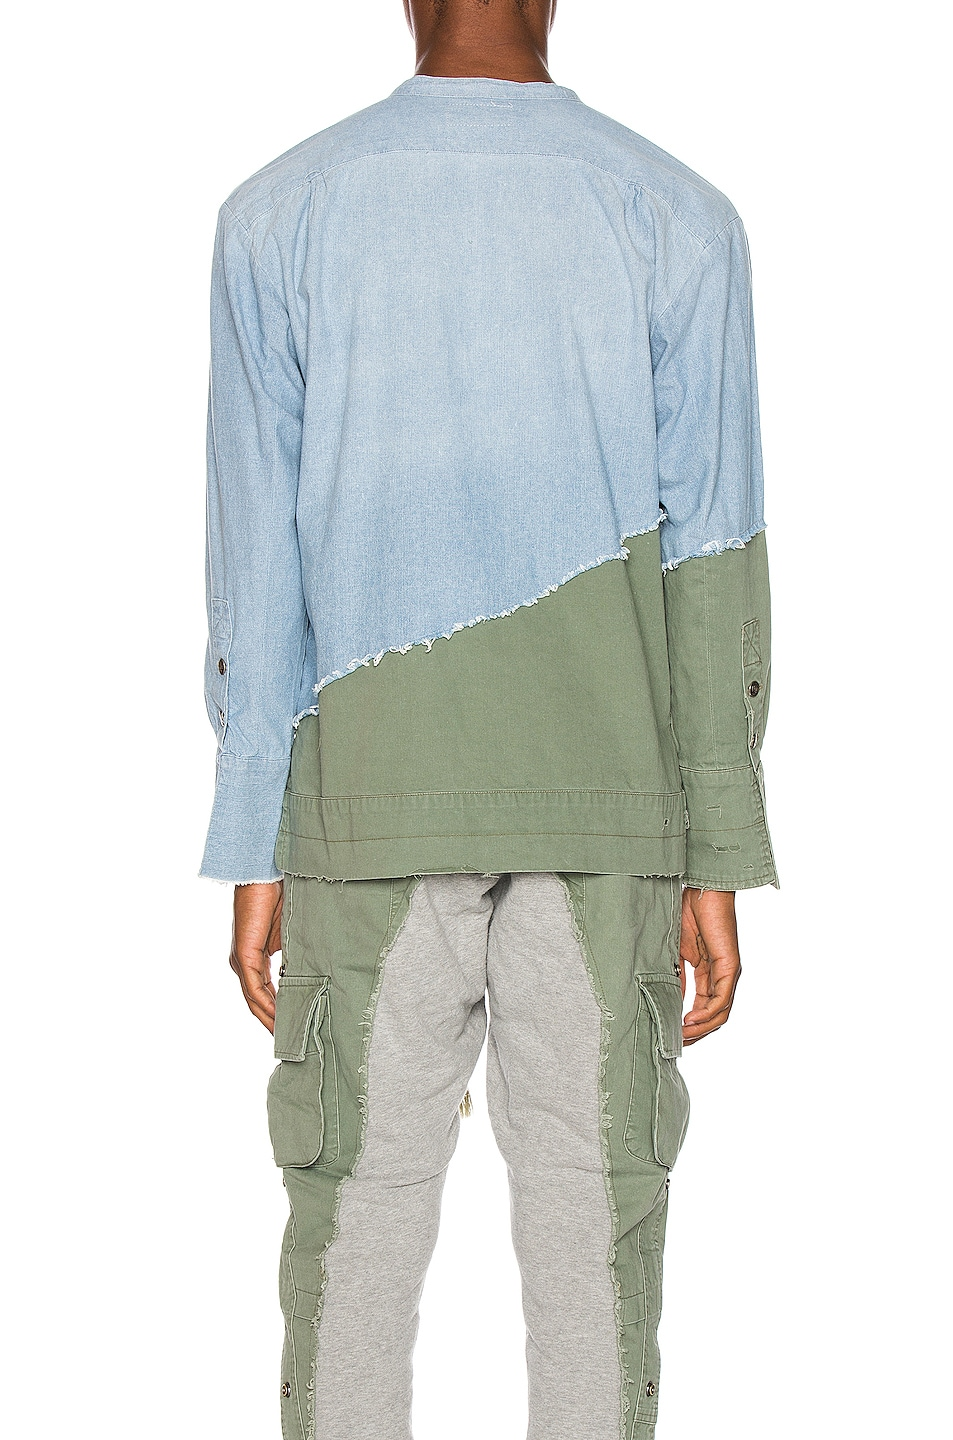 Image 4 of Greg Lauren Army Studio Shirt in Light Blue & Army